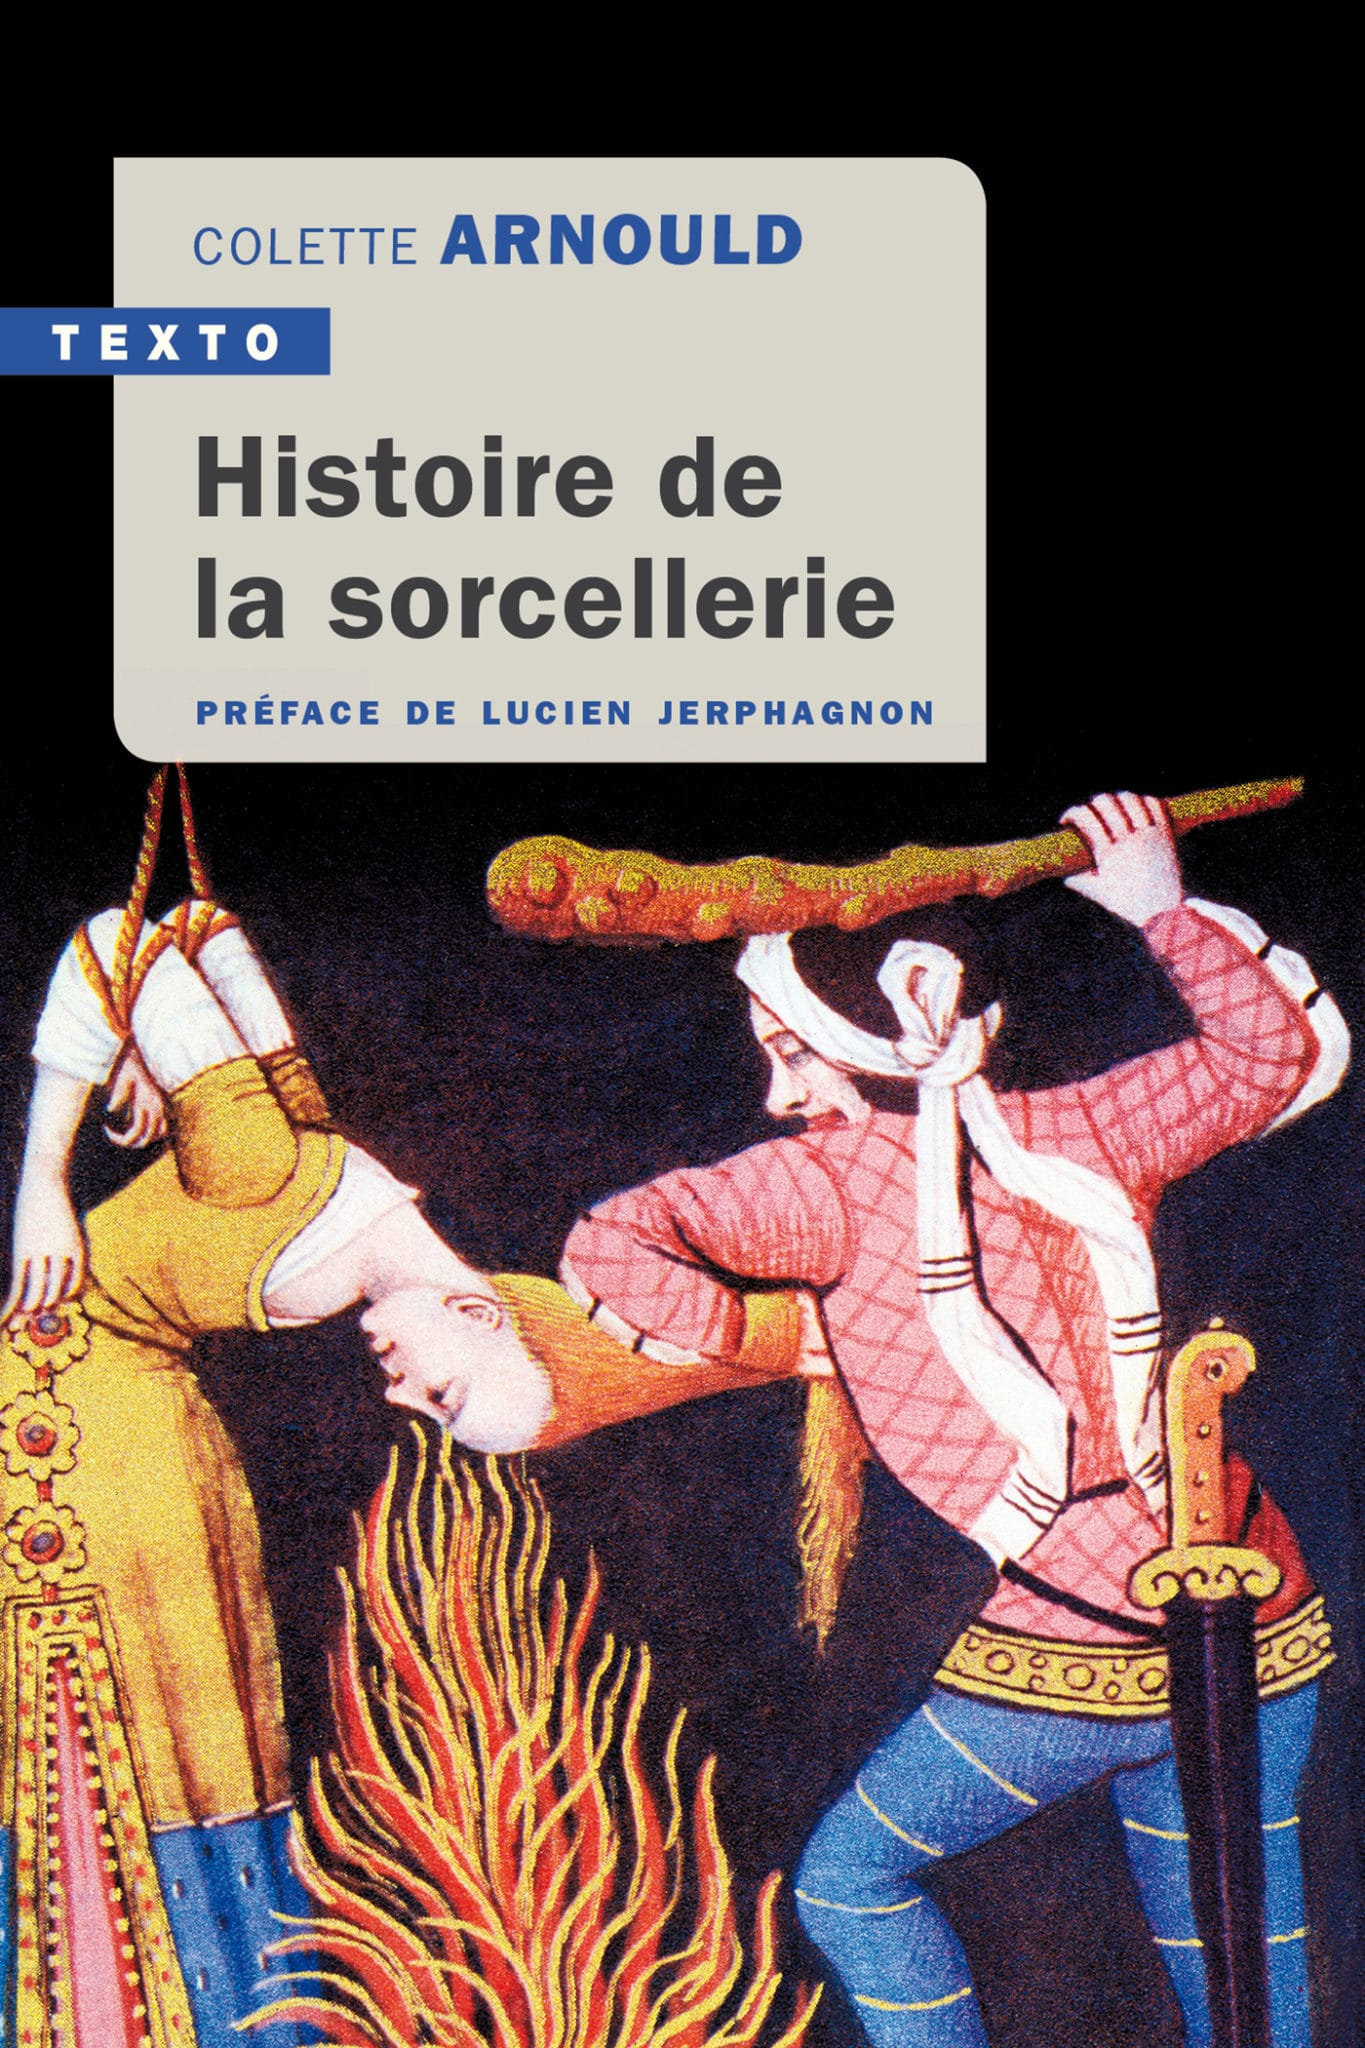 TEXTO-Histoire sorcellerie